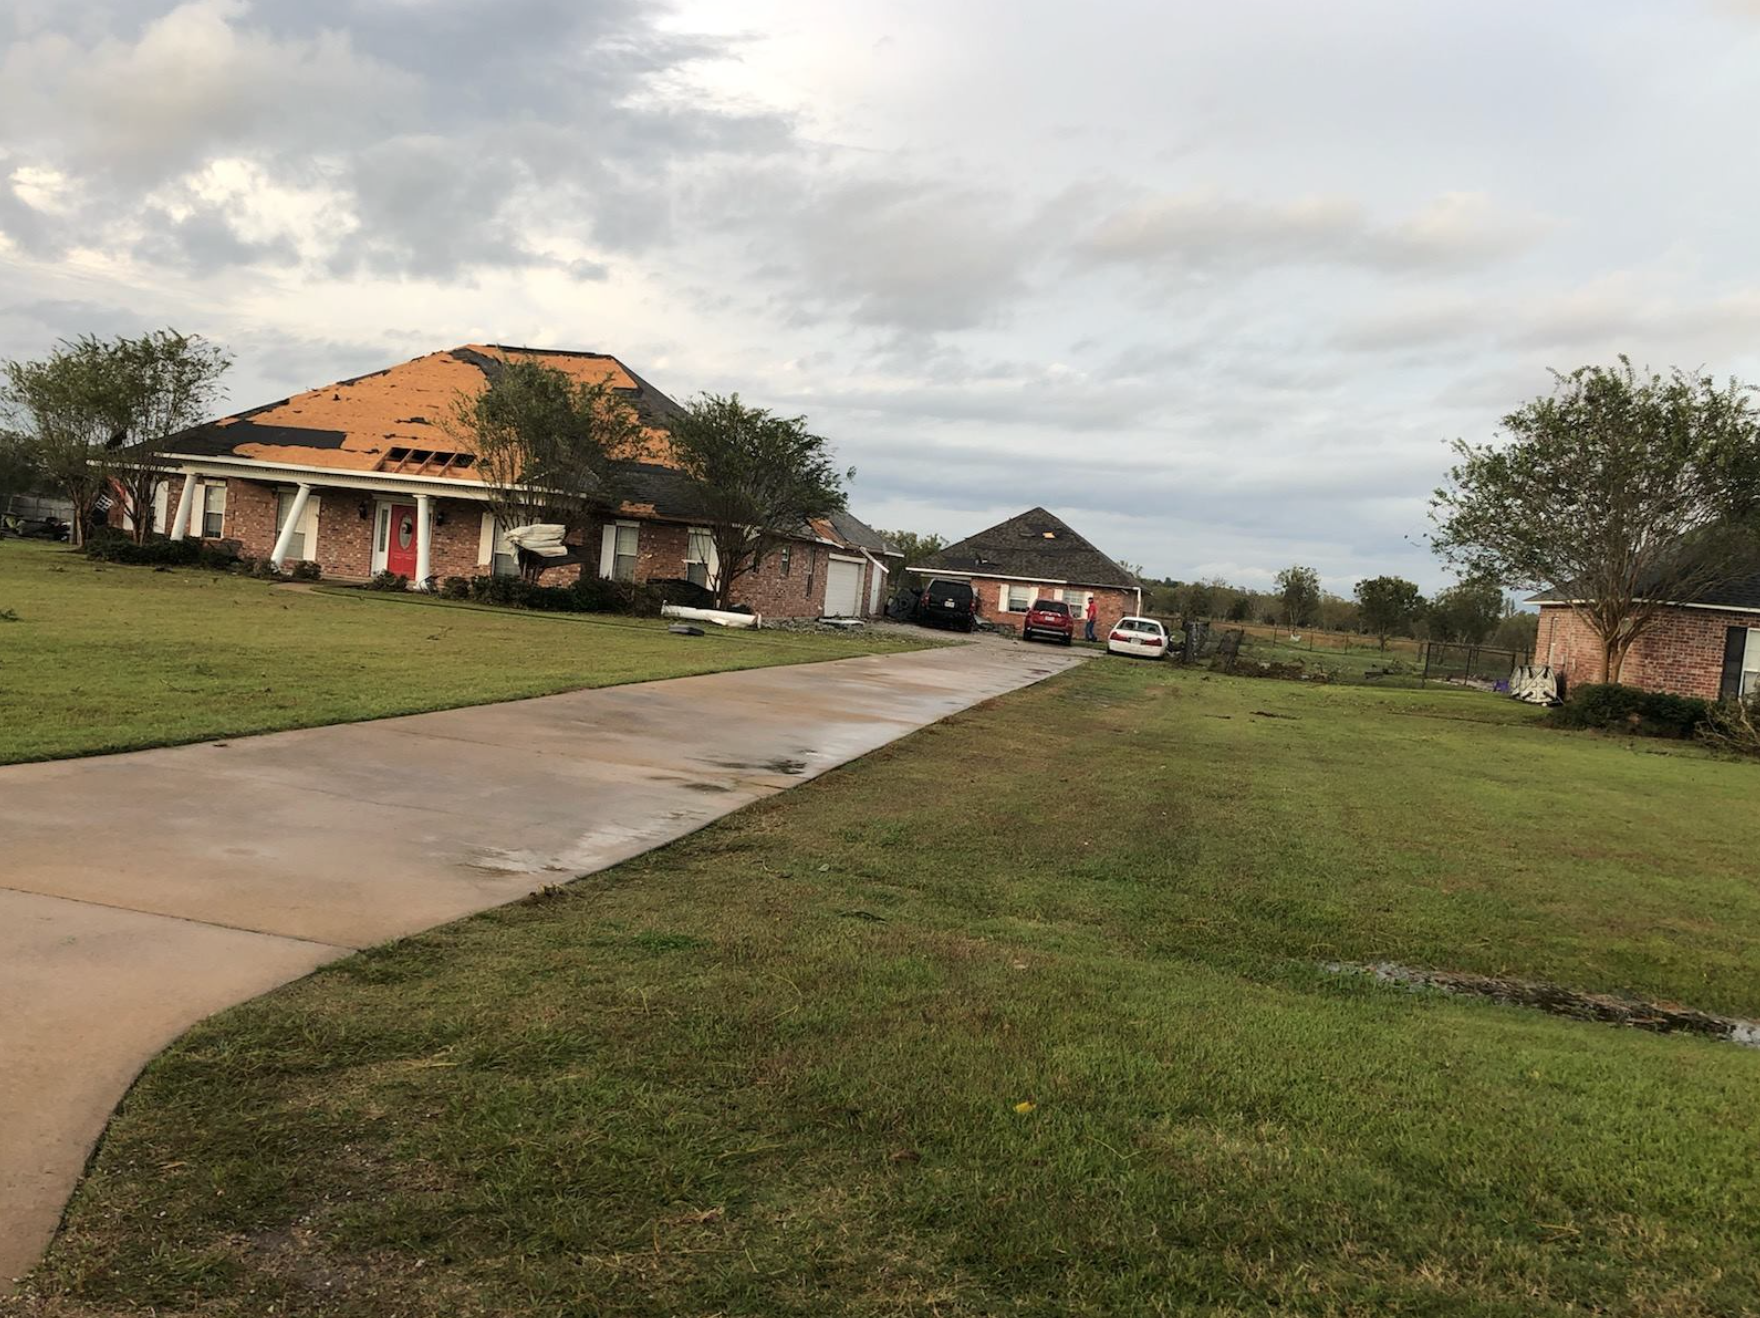 Photos: Severe storms leave trail of damage across